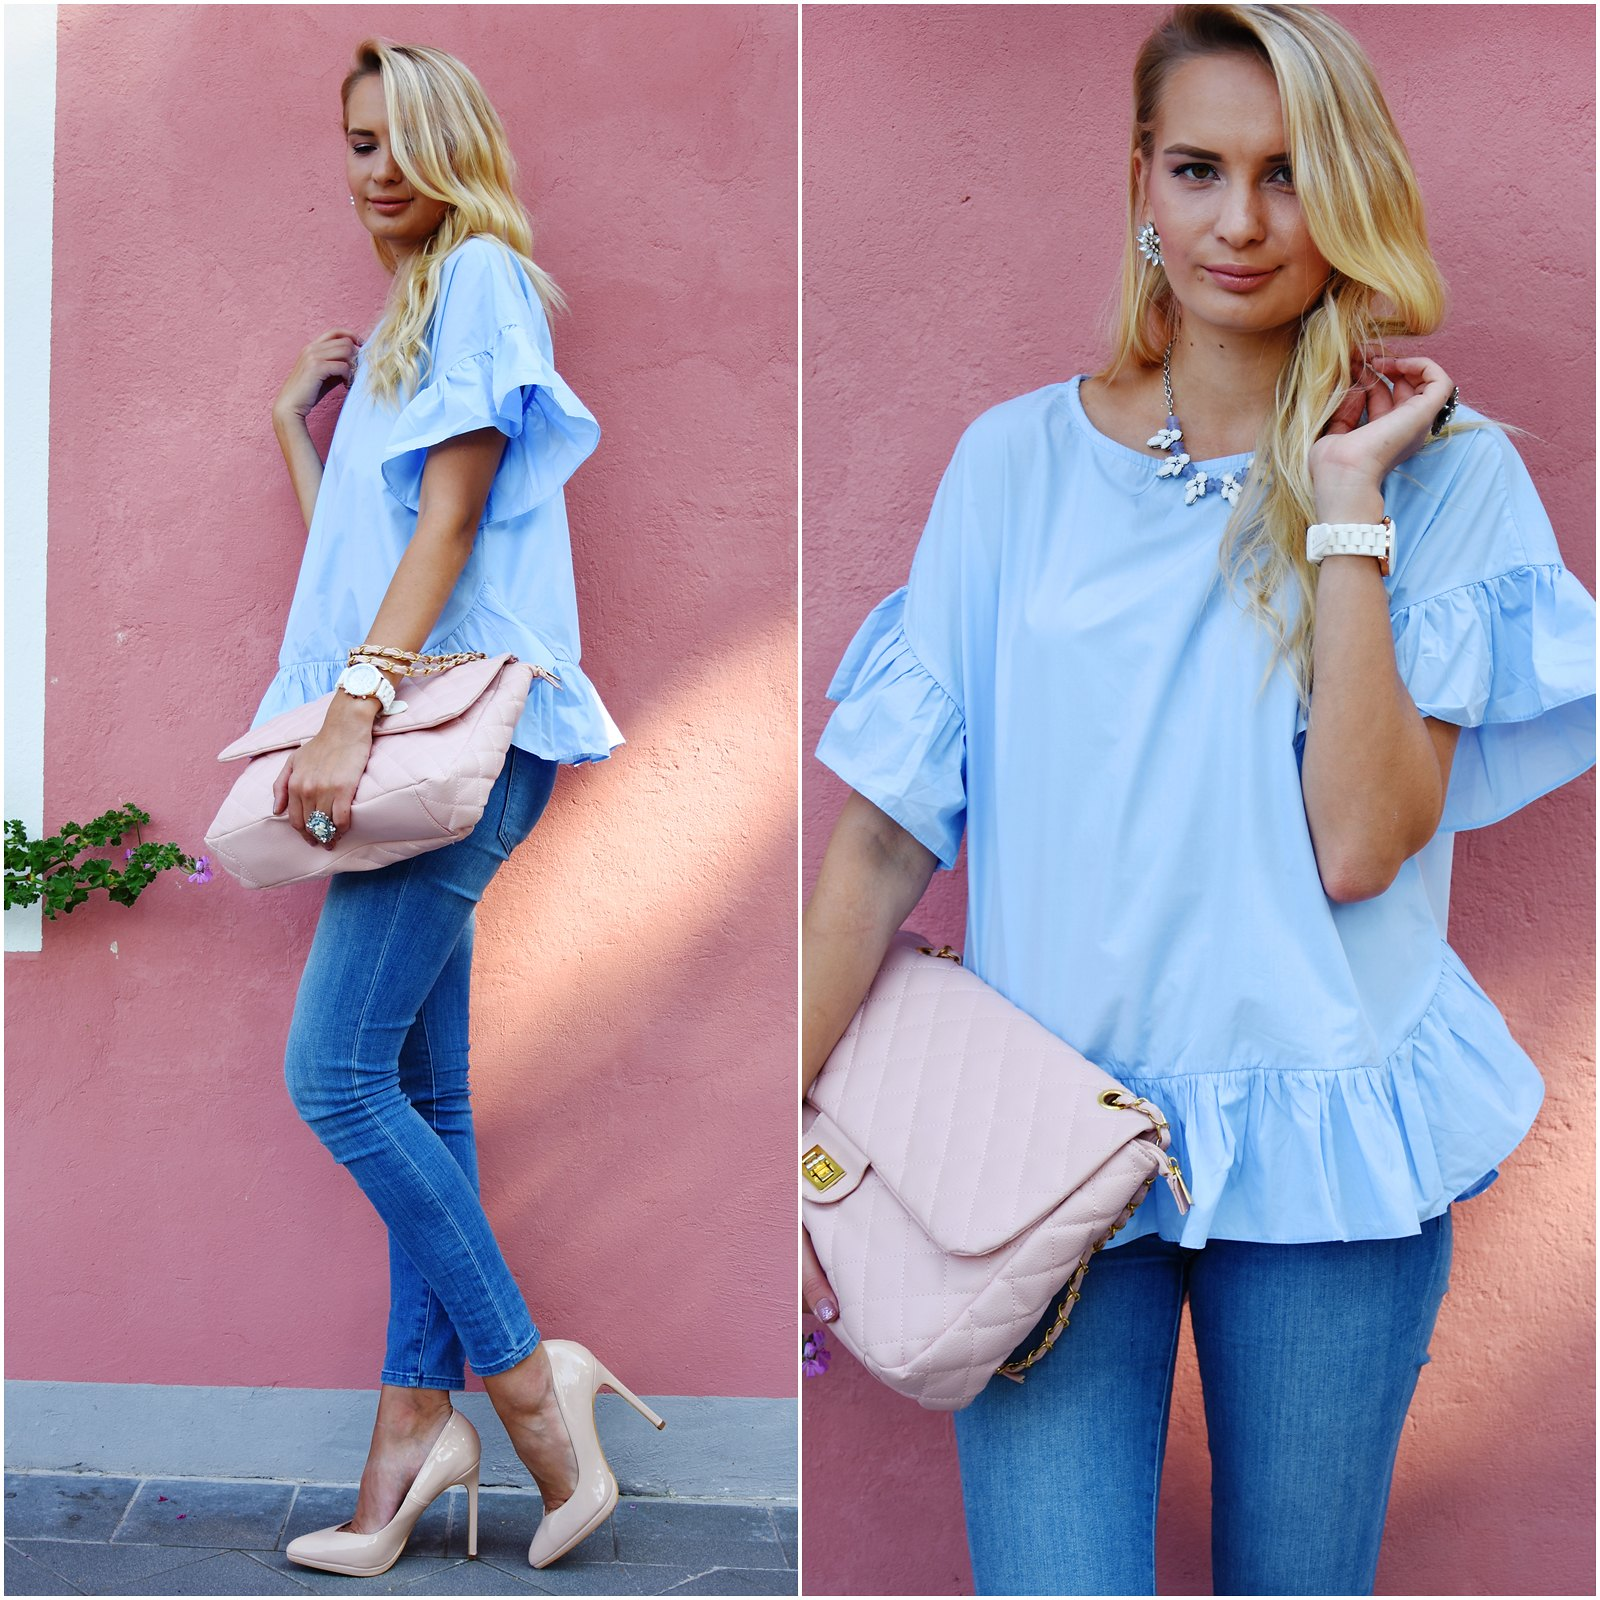 Styling a ruffled blouse